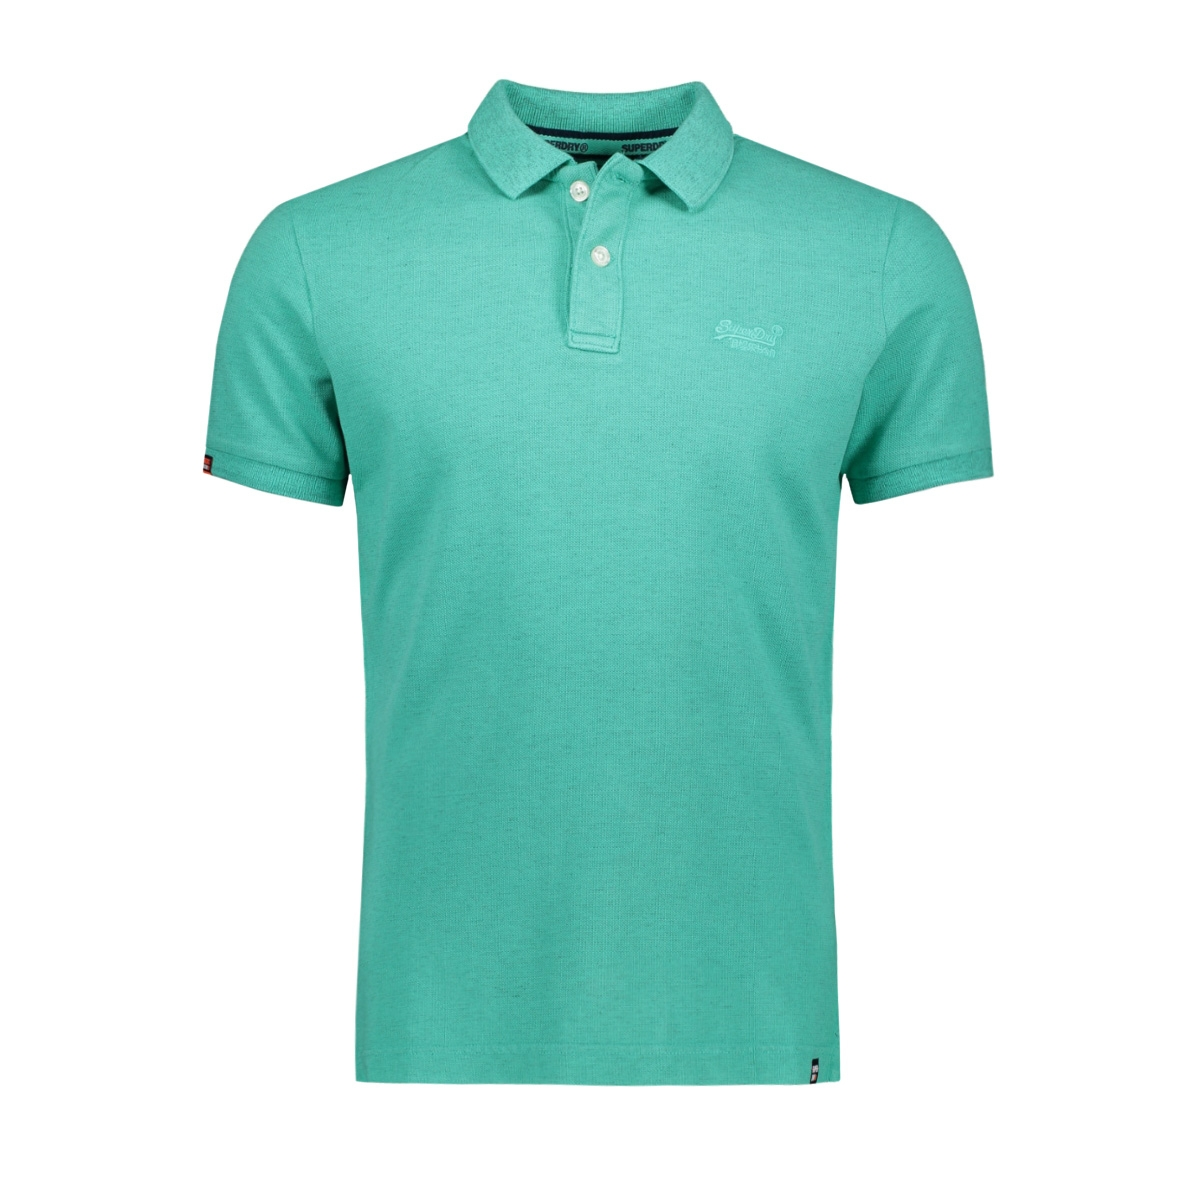 m11017rt vintage destroyed polo superdry polo aqua marl